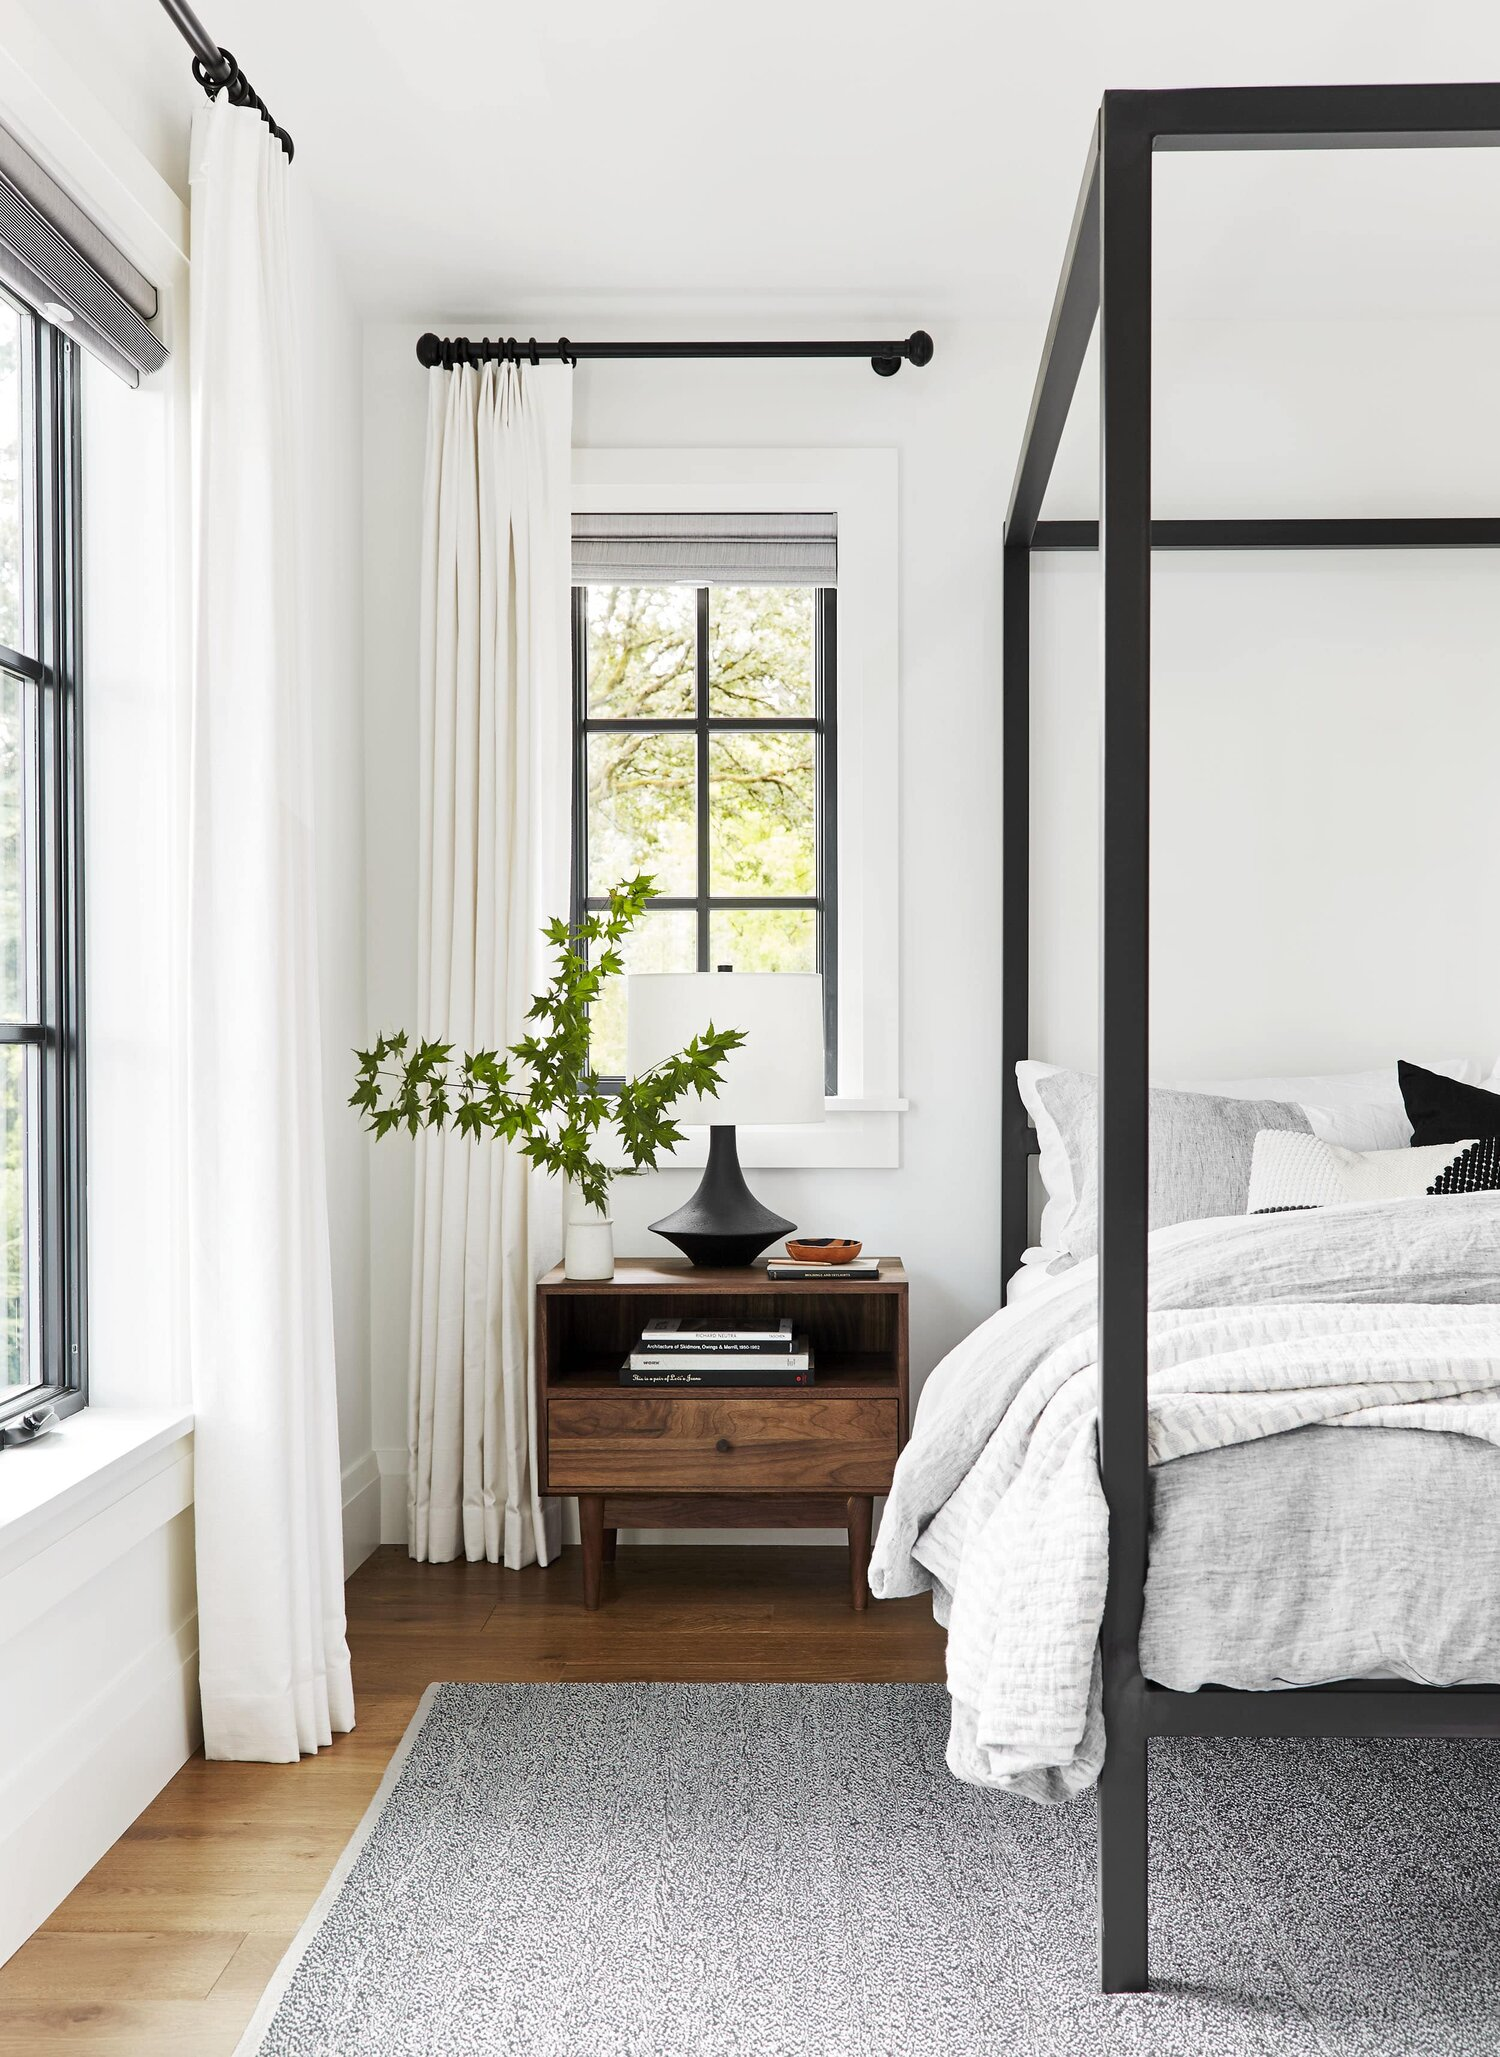 4 Tips For Layering Window Treatments Like A Pro